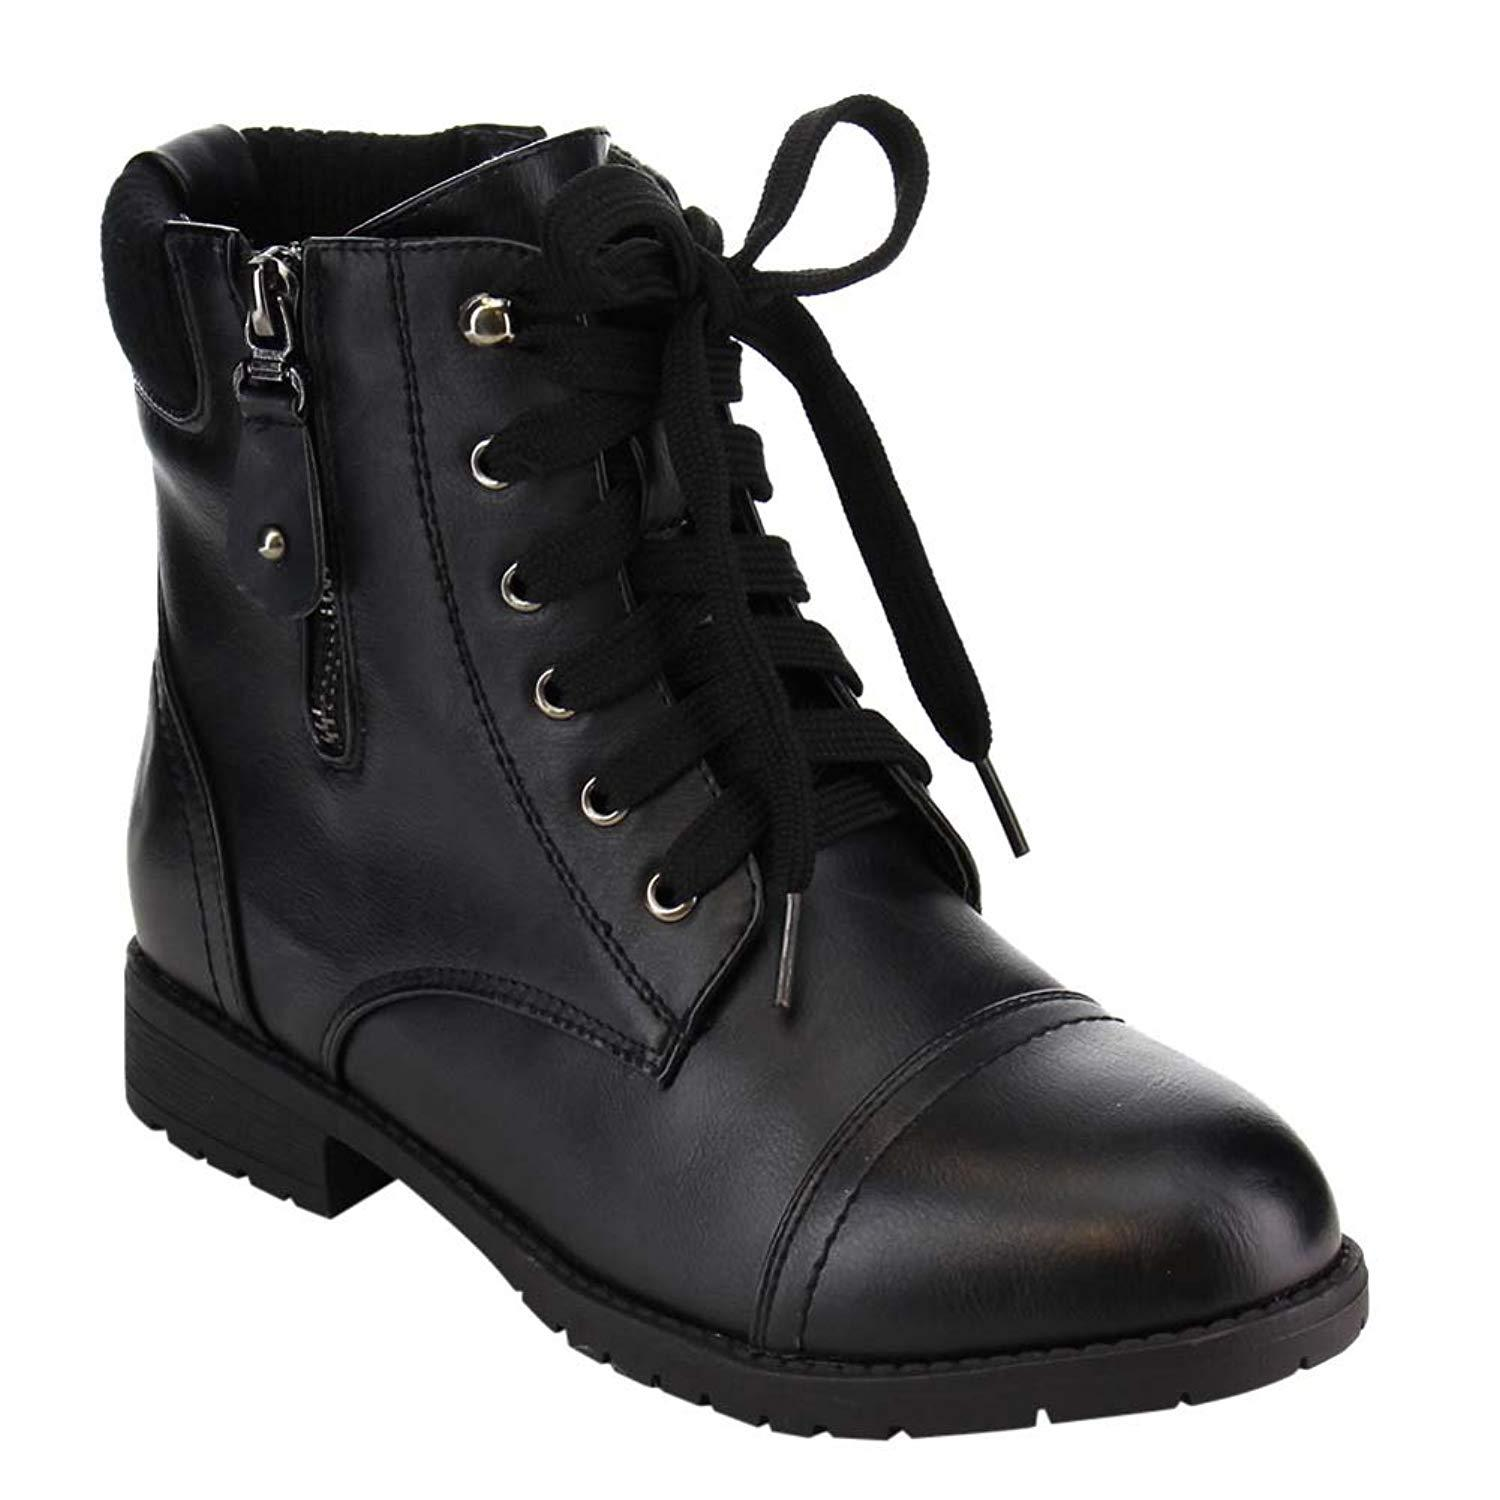 Lace up Military Style Combat Ankle Bootie Women's Boots Vegan Leather - 9 / Black